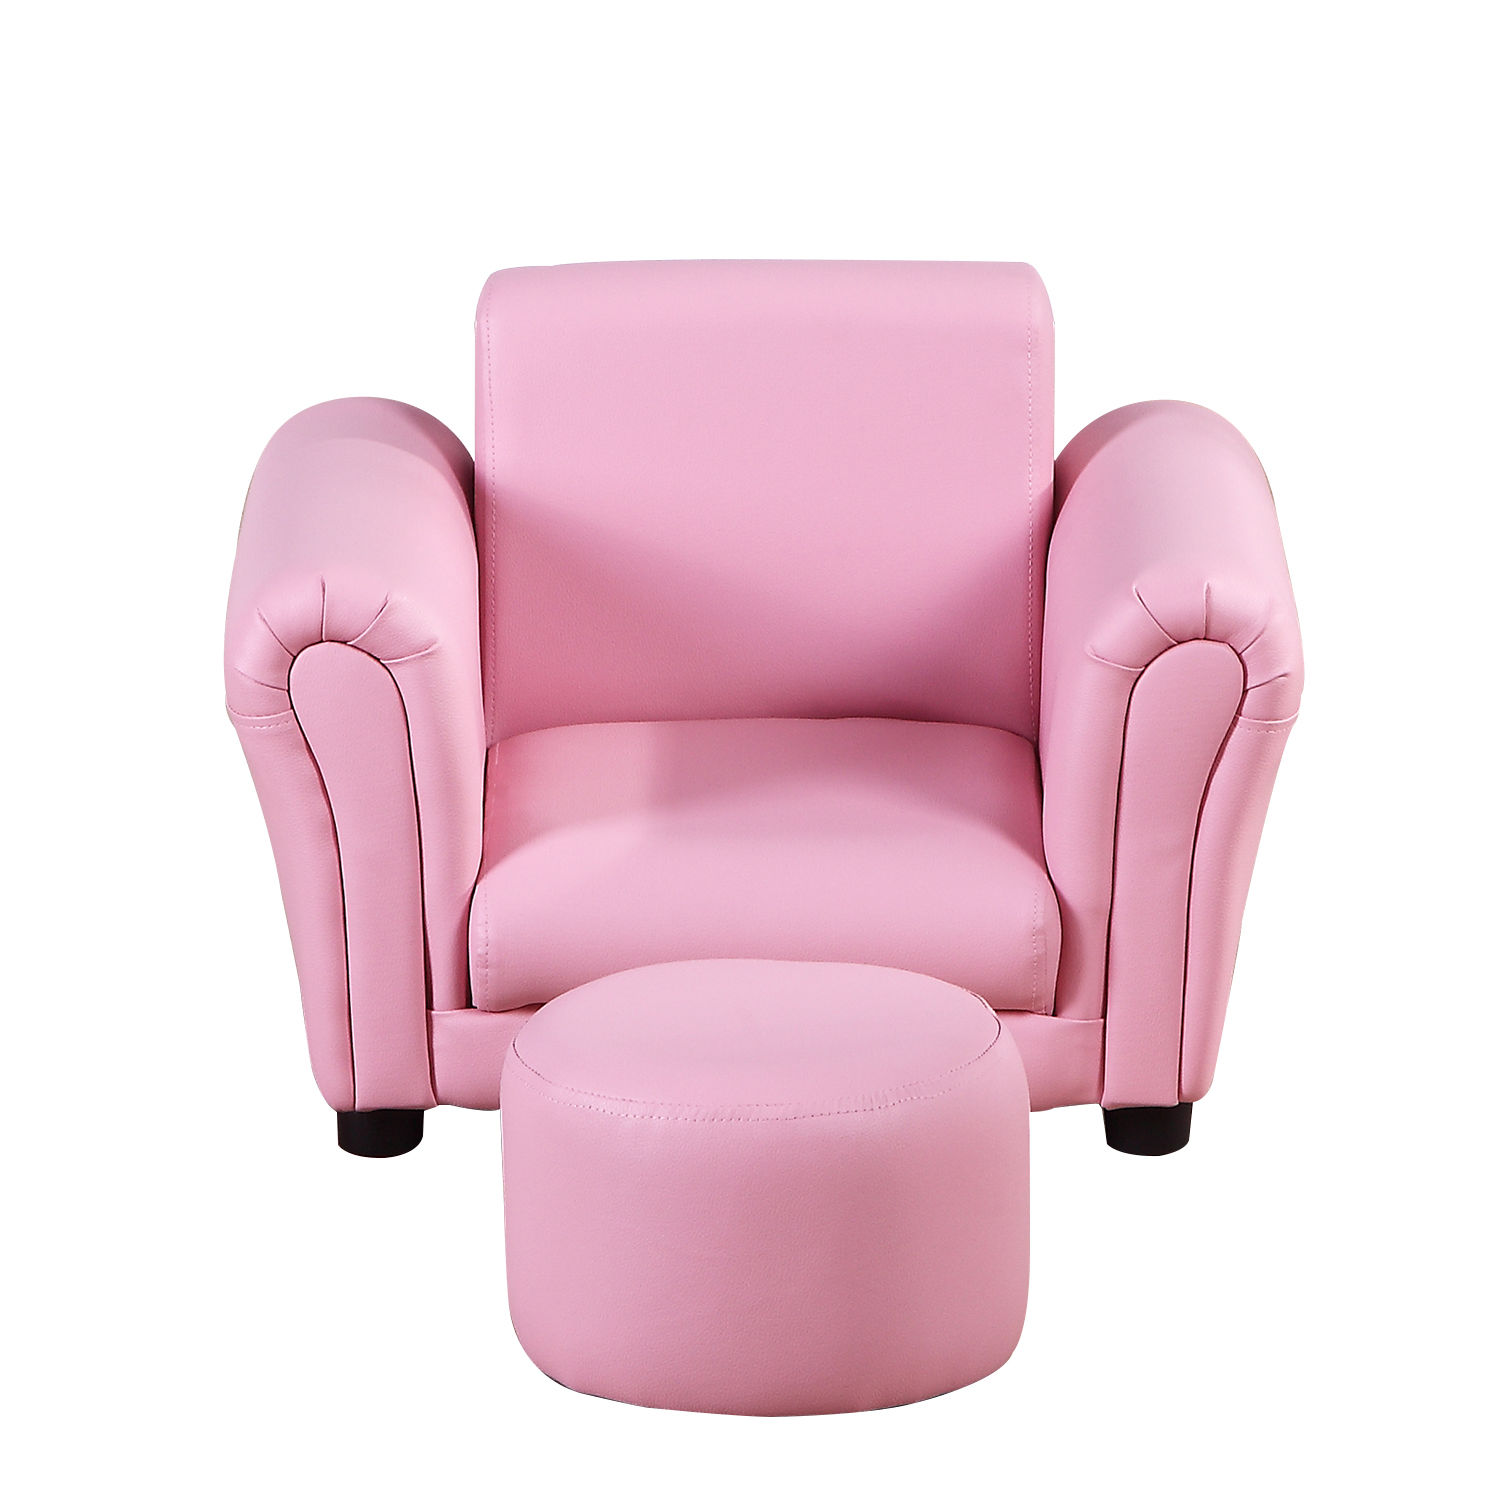 Kids-Sofa-Children-Chair-Seat-Armchair-W-Footstool-Playroom-Bedroom-Black-Pink thumbnail 13